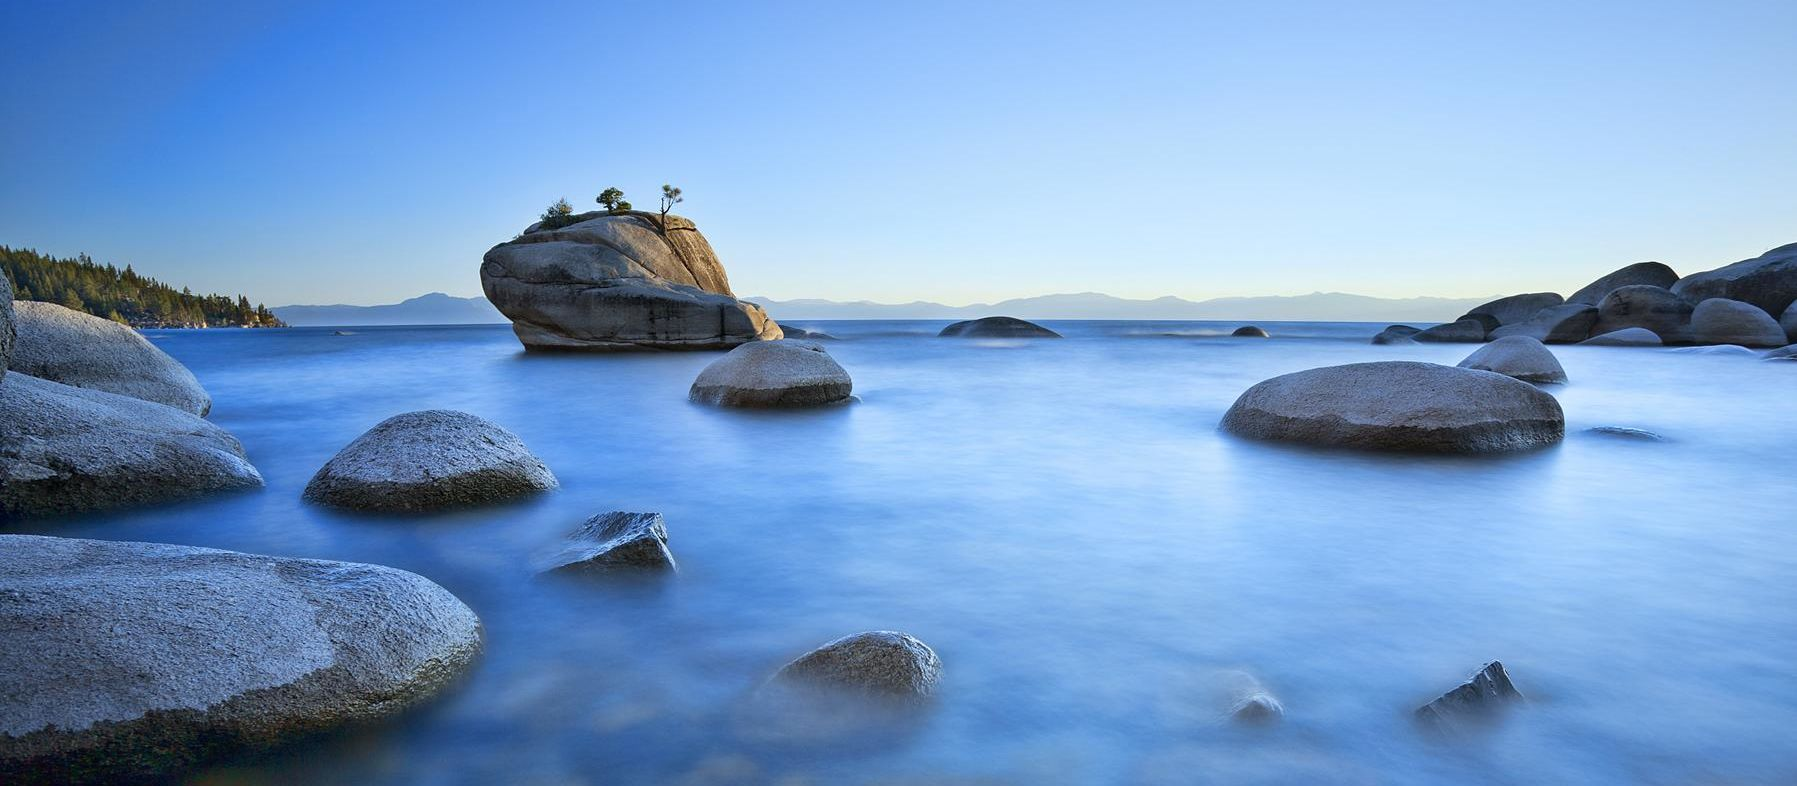 Bonzai Rock - Lake Tahoe